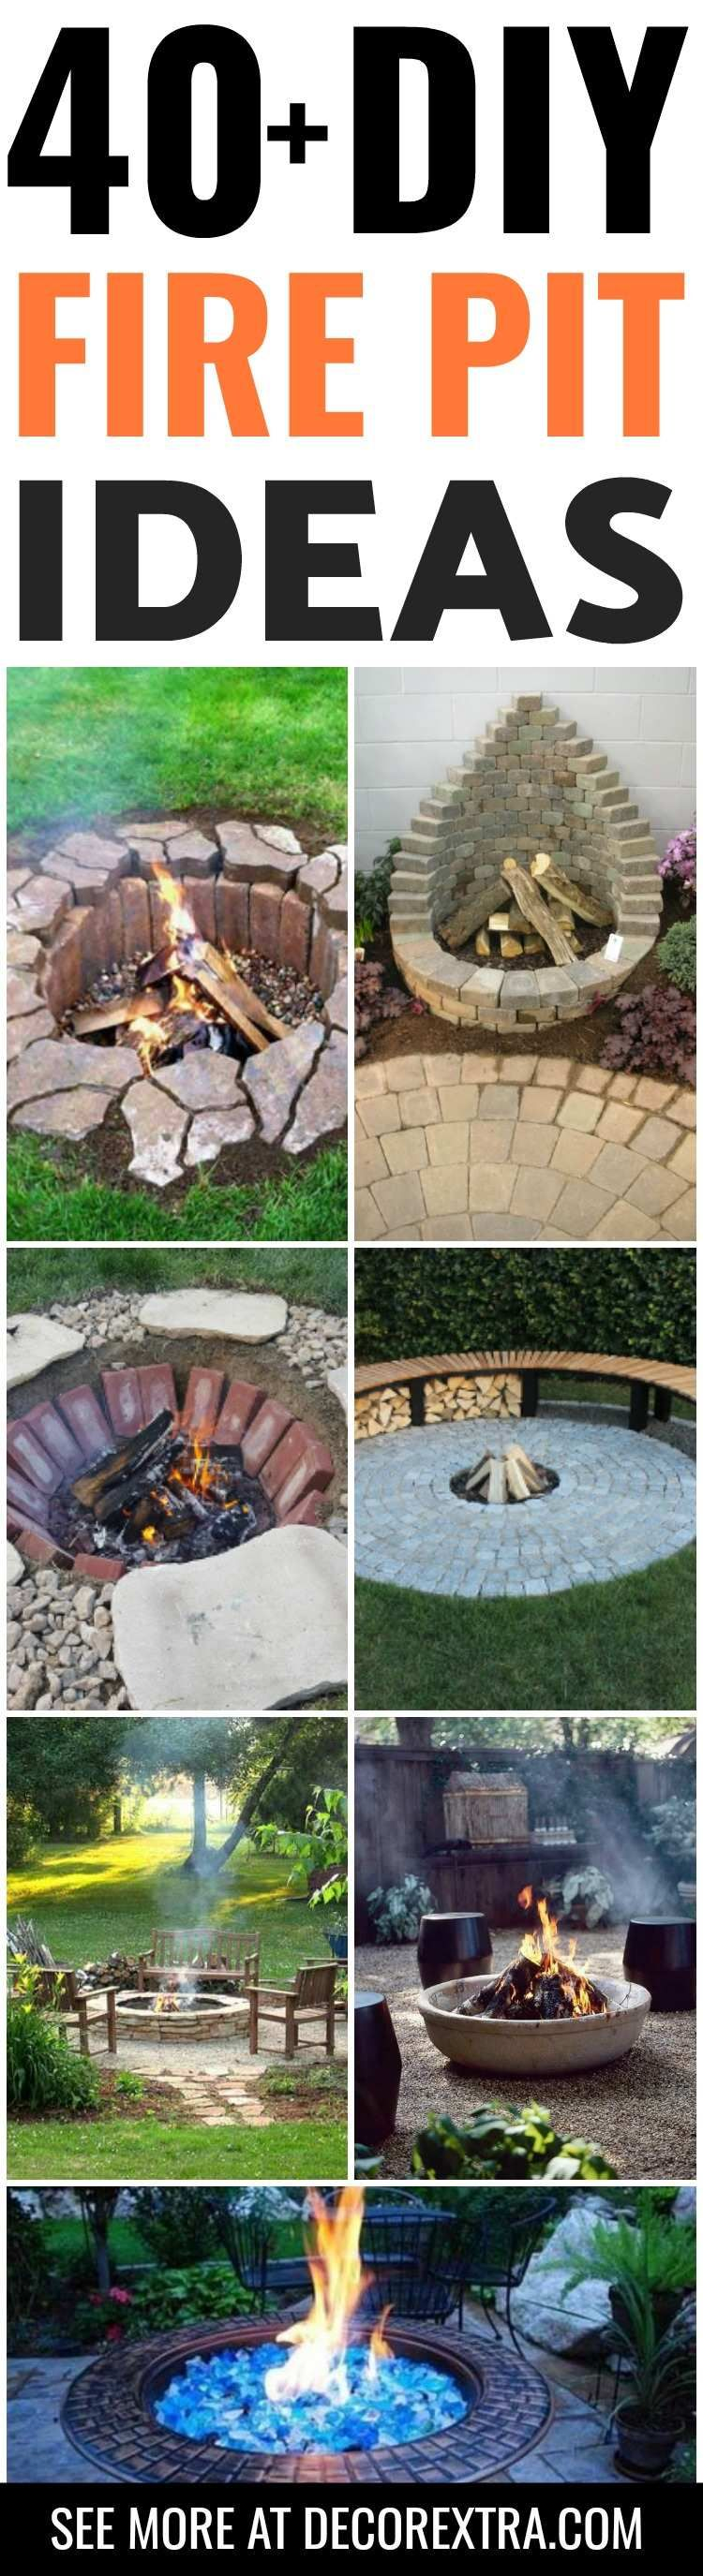 Diy fire pits amazing diy outdoor fire pit ideas you must see